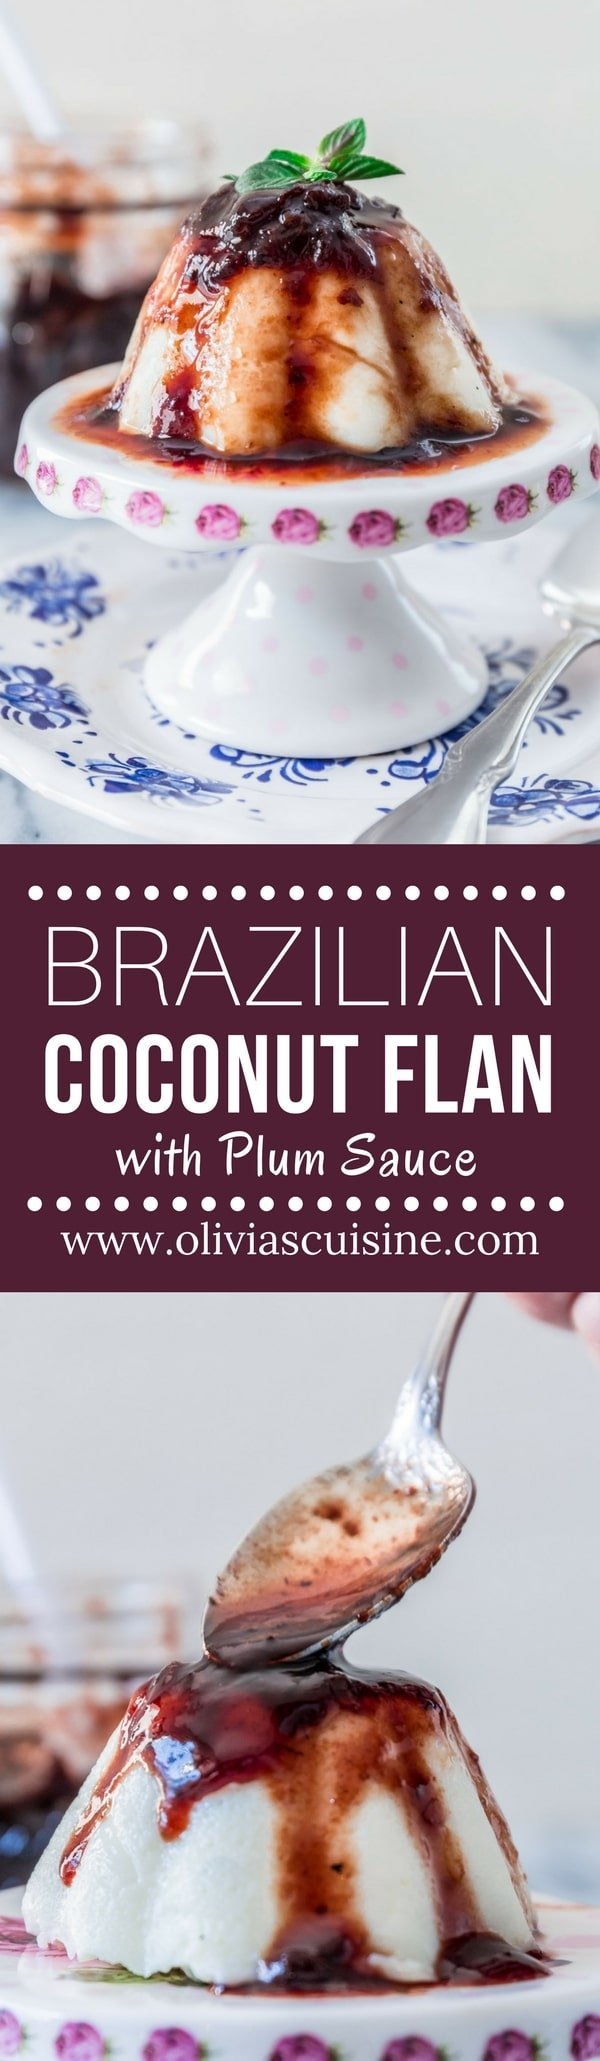 Brazilian Coconut Flan with Plum Sauce (Manjar Branco) | www.oliviascuisine.com | A classic Brazilian dessert, very popular during the holidays but easy enough to be enjoyed all year round! All you'll need are a handful of ingredients and a little bit of patience to wait for the flan to set in the fridge overnight. (Recipe and food photography by @oliviascuisine.)